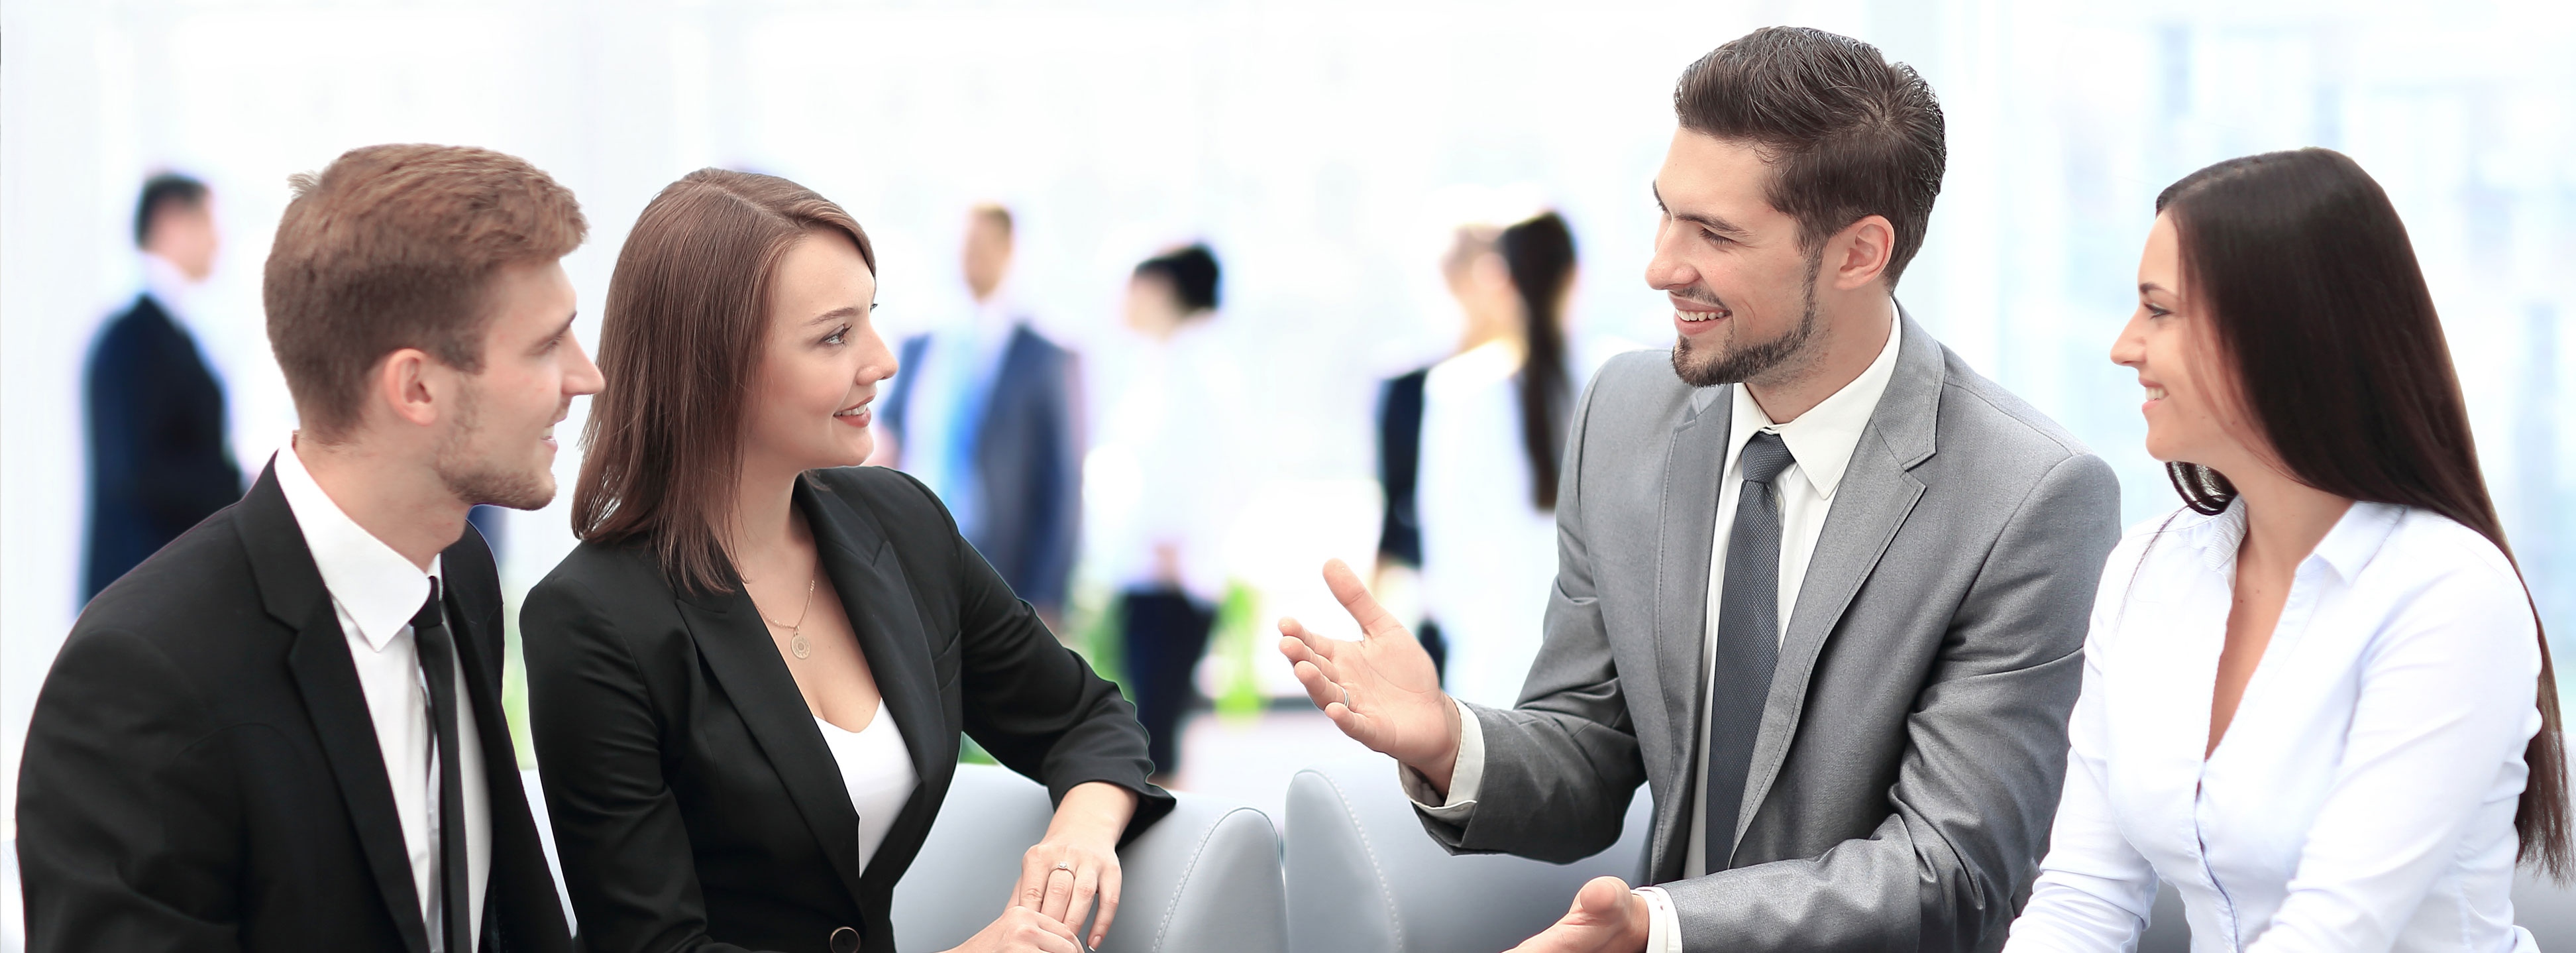 Communicating in Professional Environments